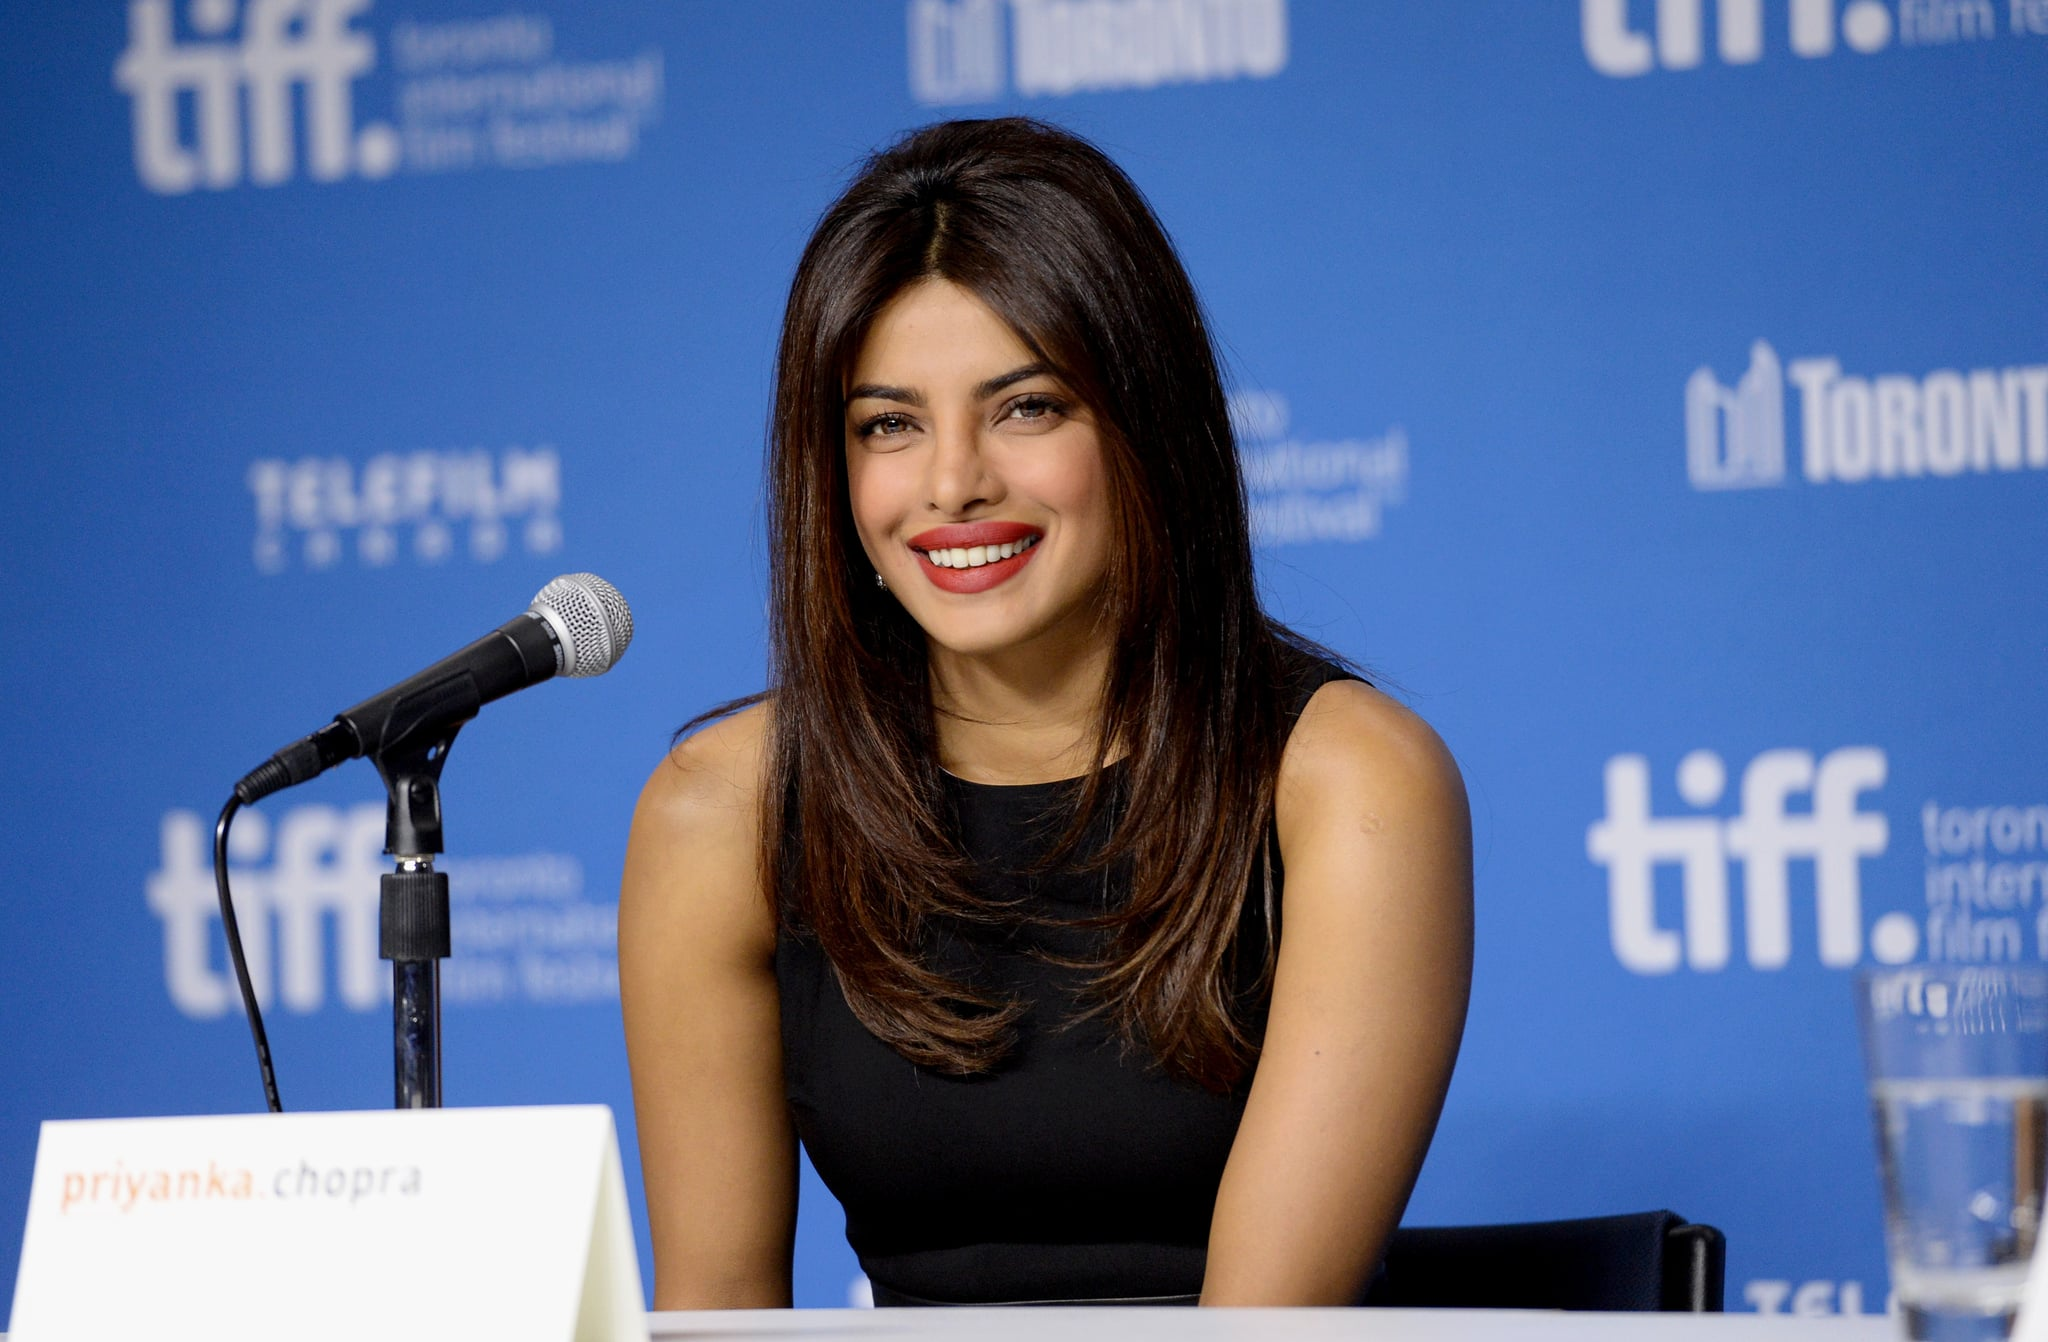 TORONTO, ON - SEPTEMBER 04:  Actress Priyanka Chopra speaks onstage at the